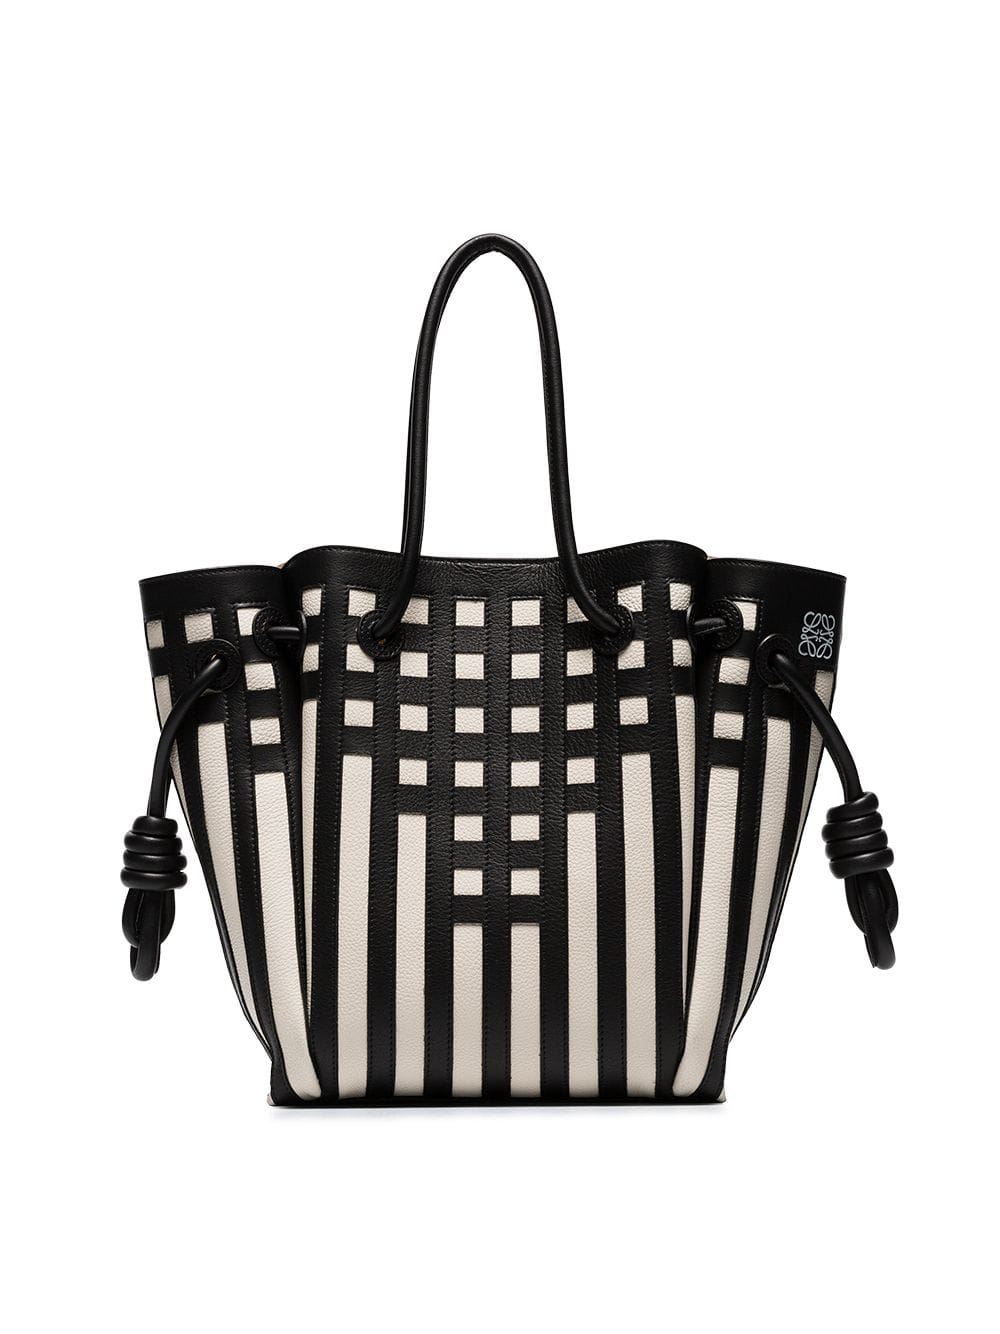 Loewe Flamenco Knot Grid Calfskin Leather Tote - Black